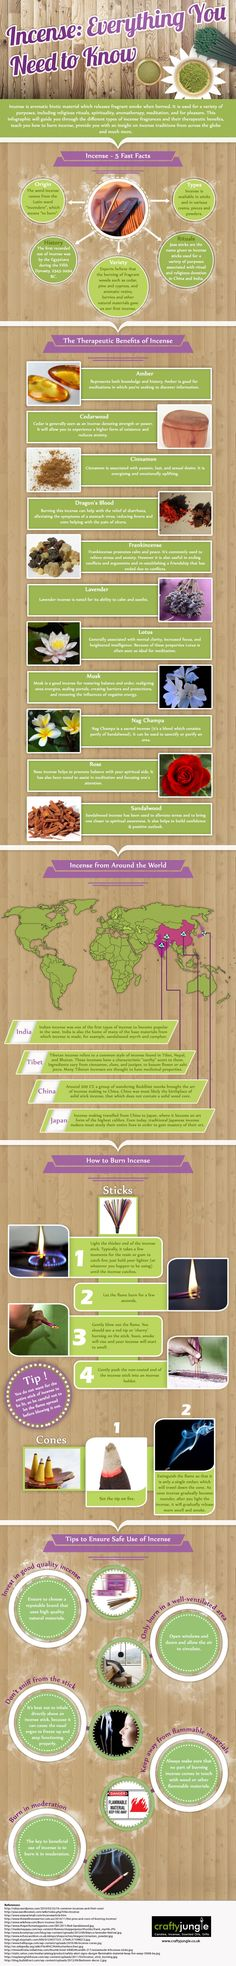 http://www.phomz.com/category/Incense/ Incense: Everything You Need to Know #Infographic